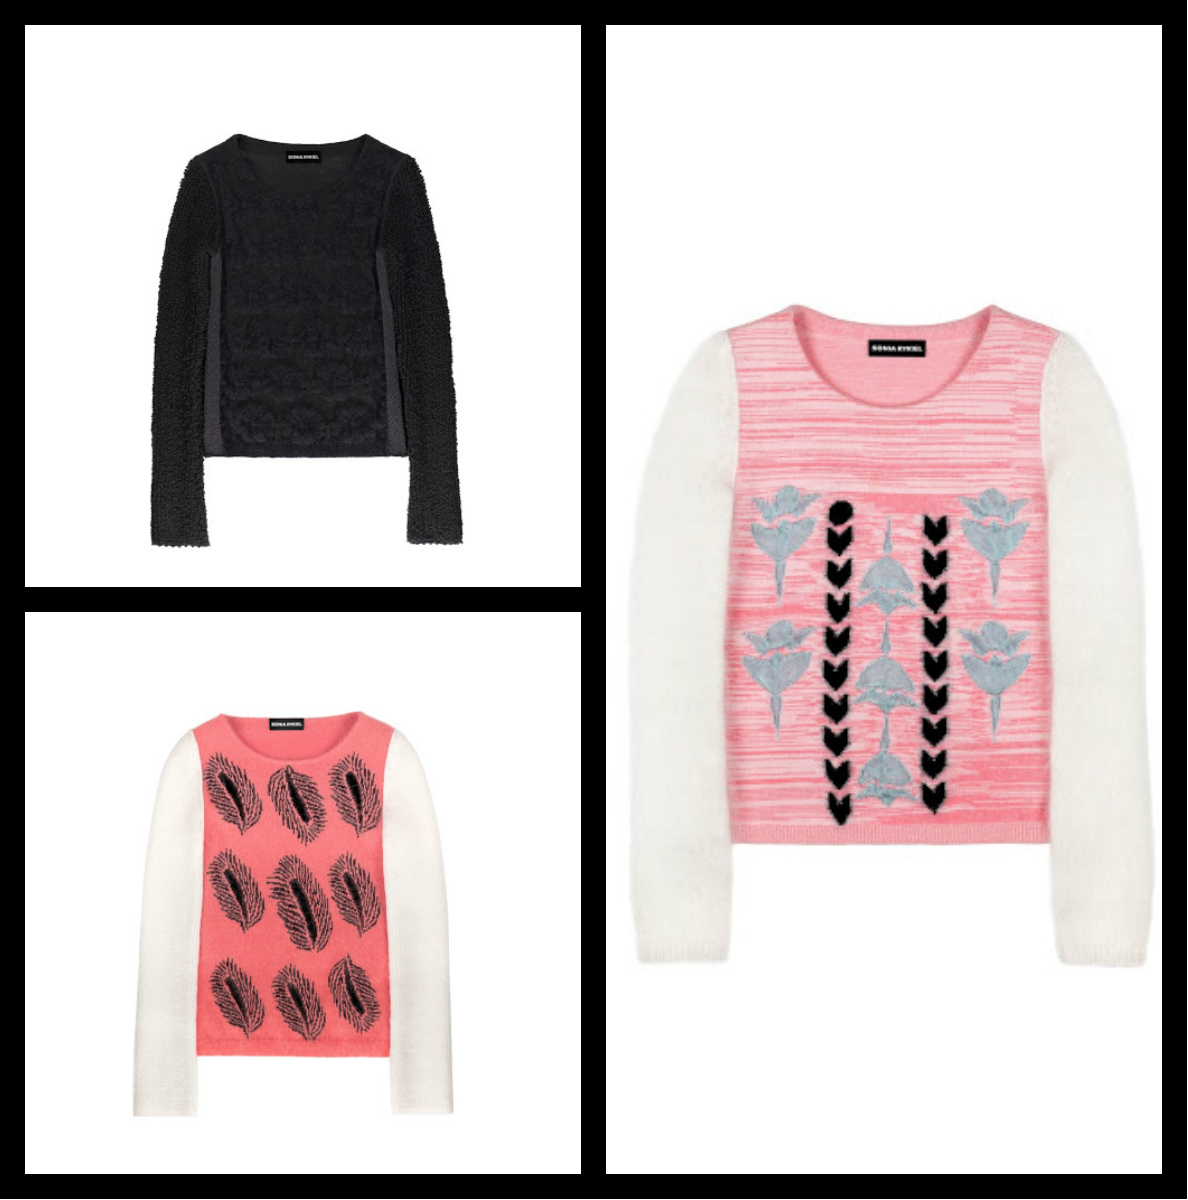 le-poor-boy-sweater-sonia-rykiel